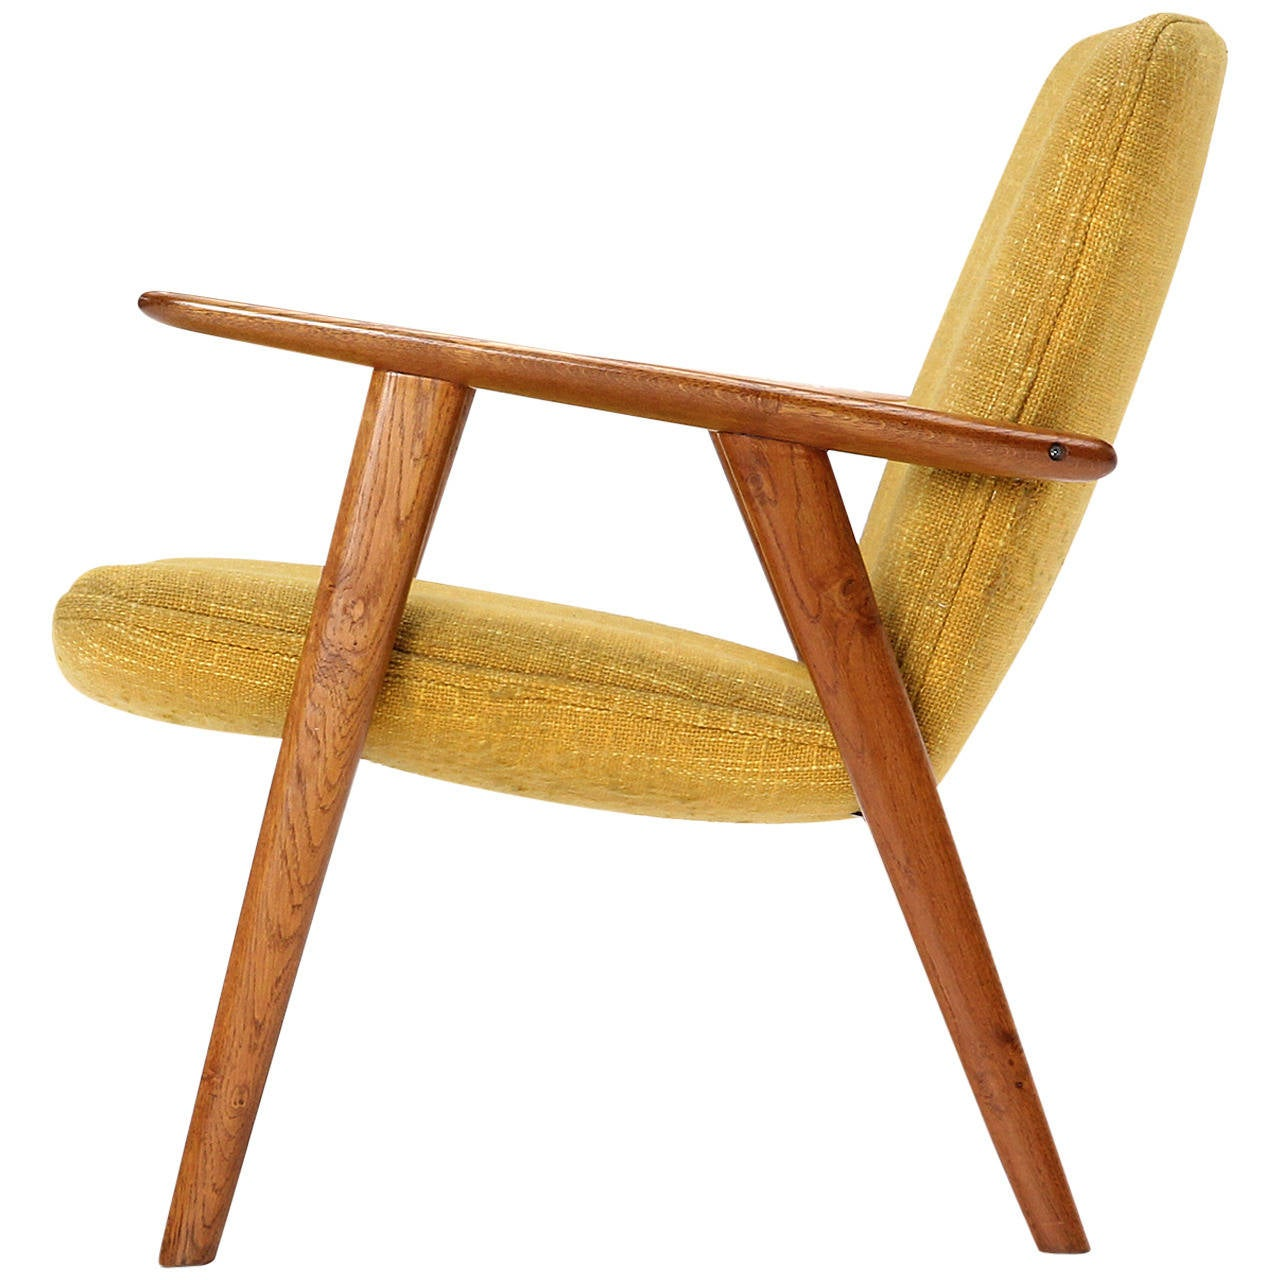 Merveilleux Oak Reading Chair By Hans J. Wegner